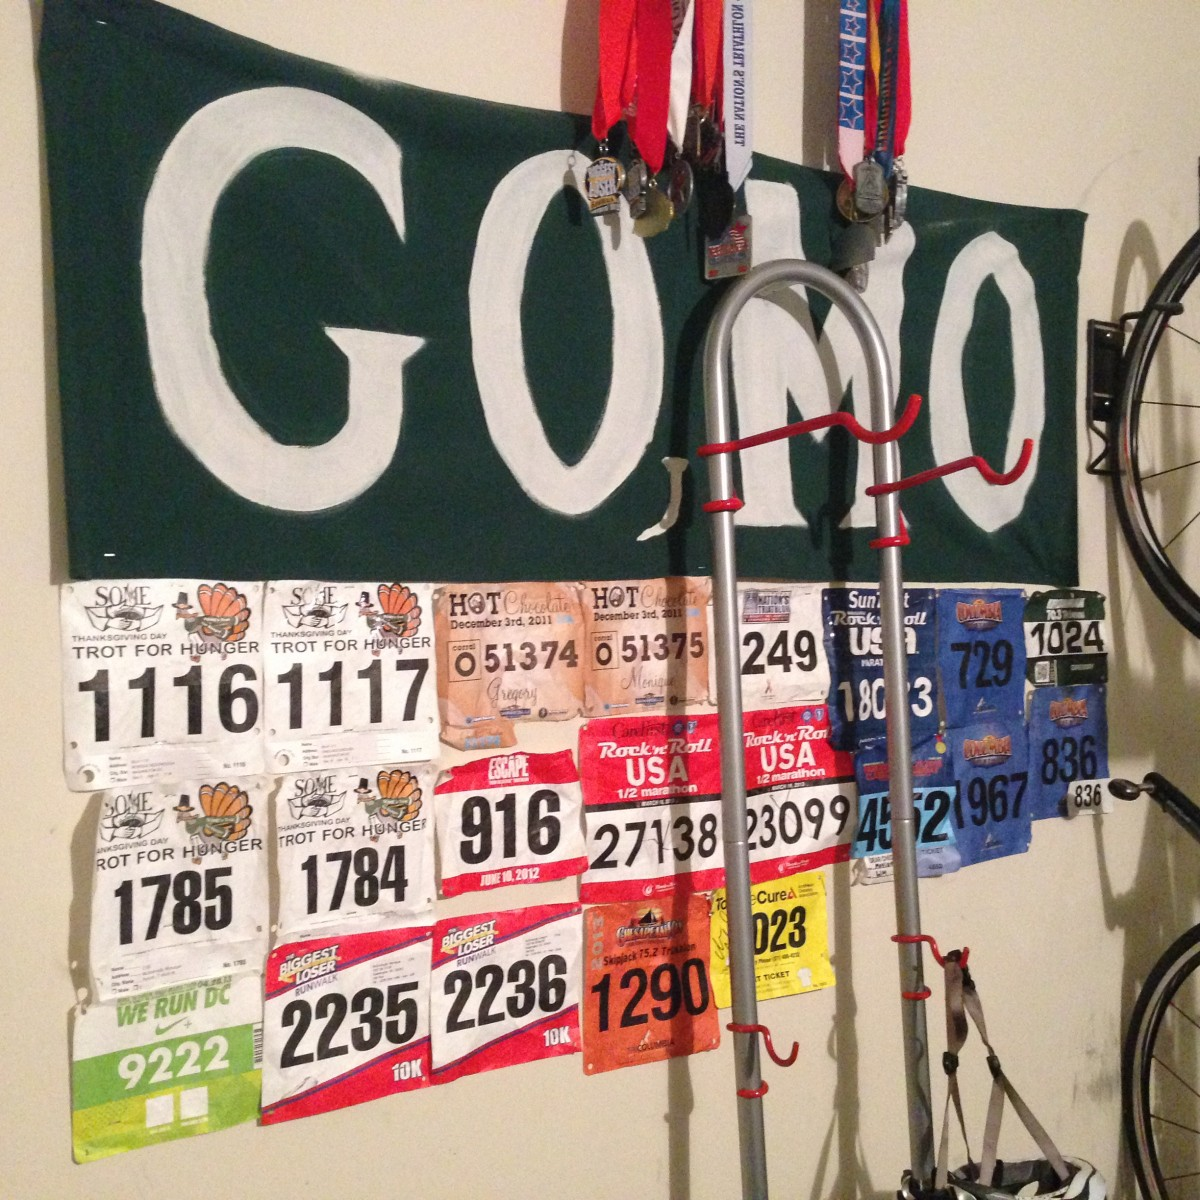 Motivation, Inspiration, Triathlon Medals, Race Numbers